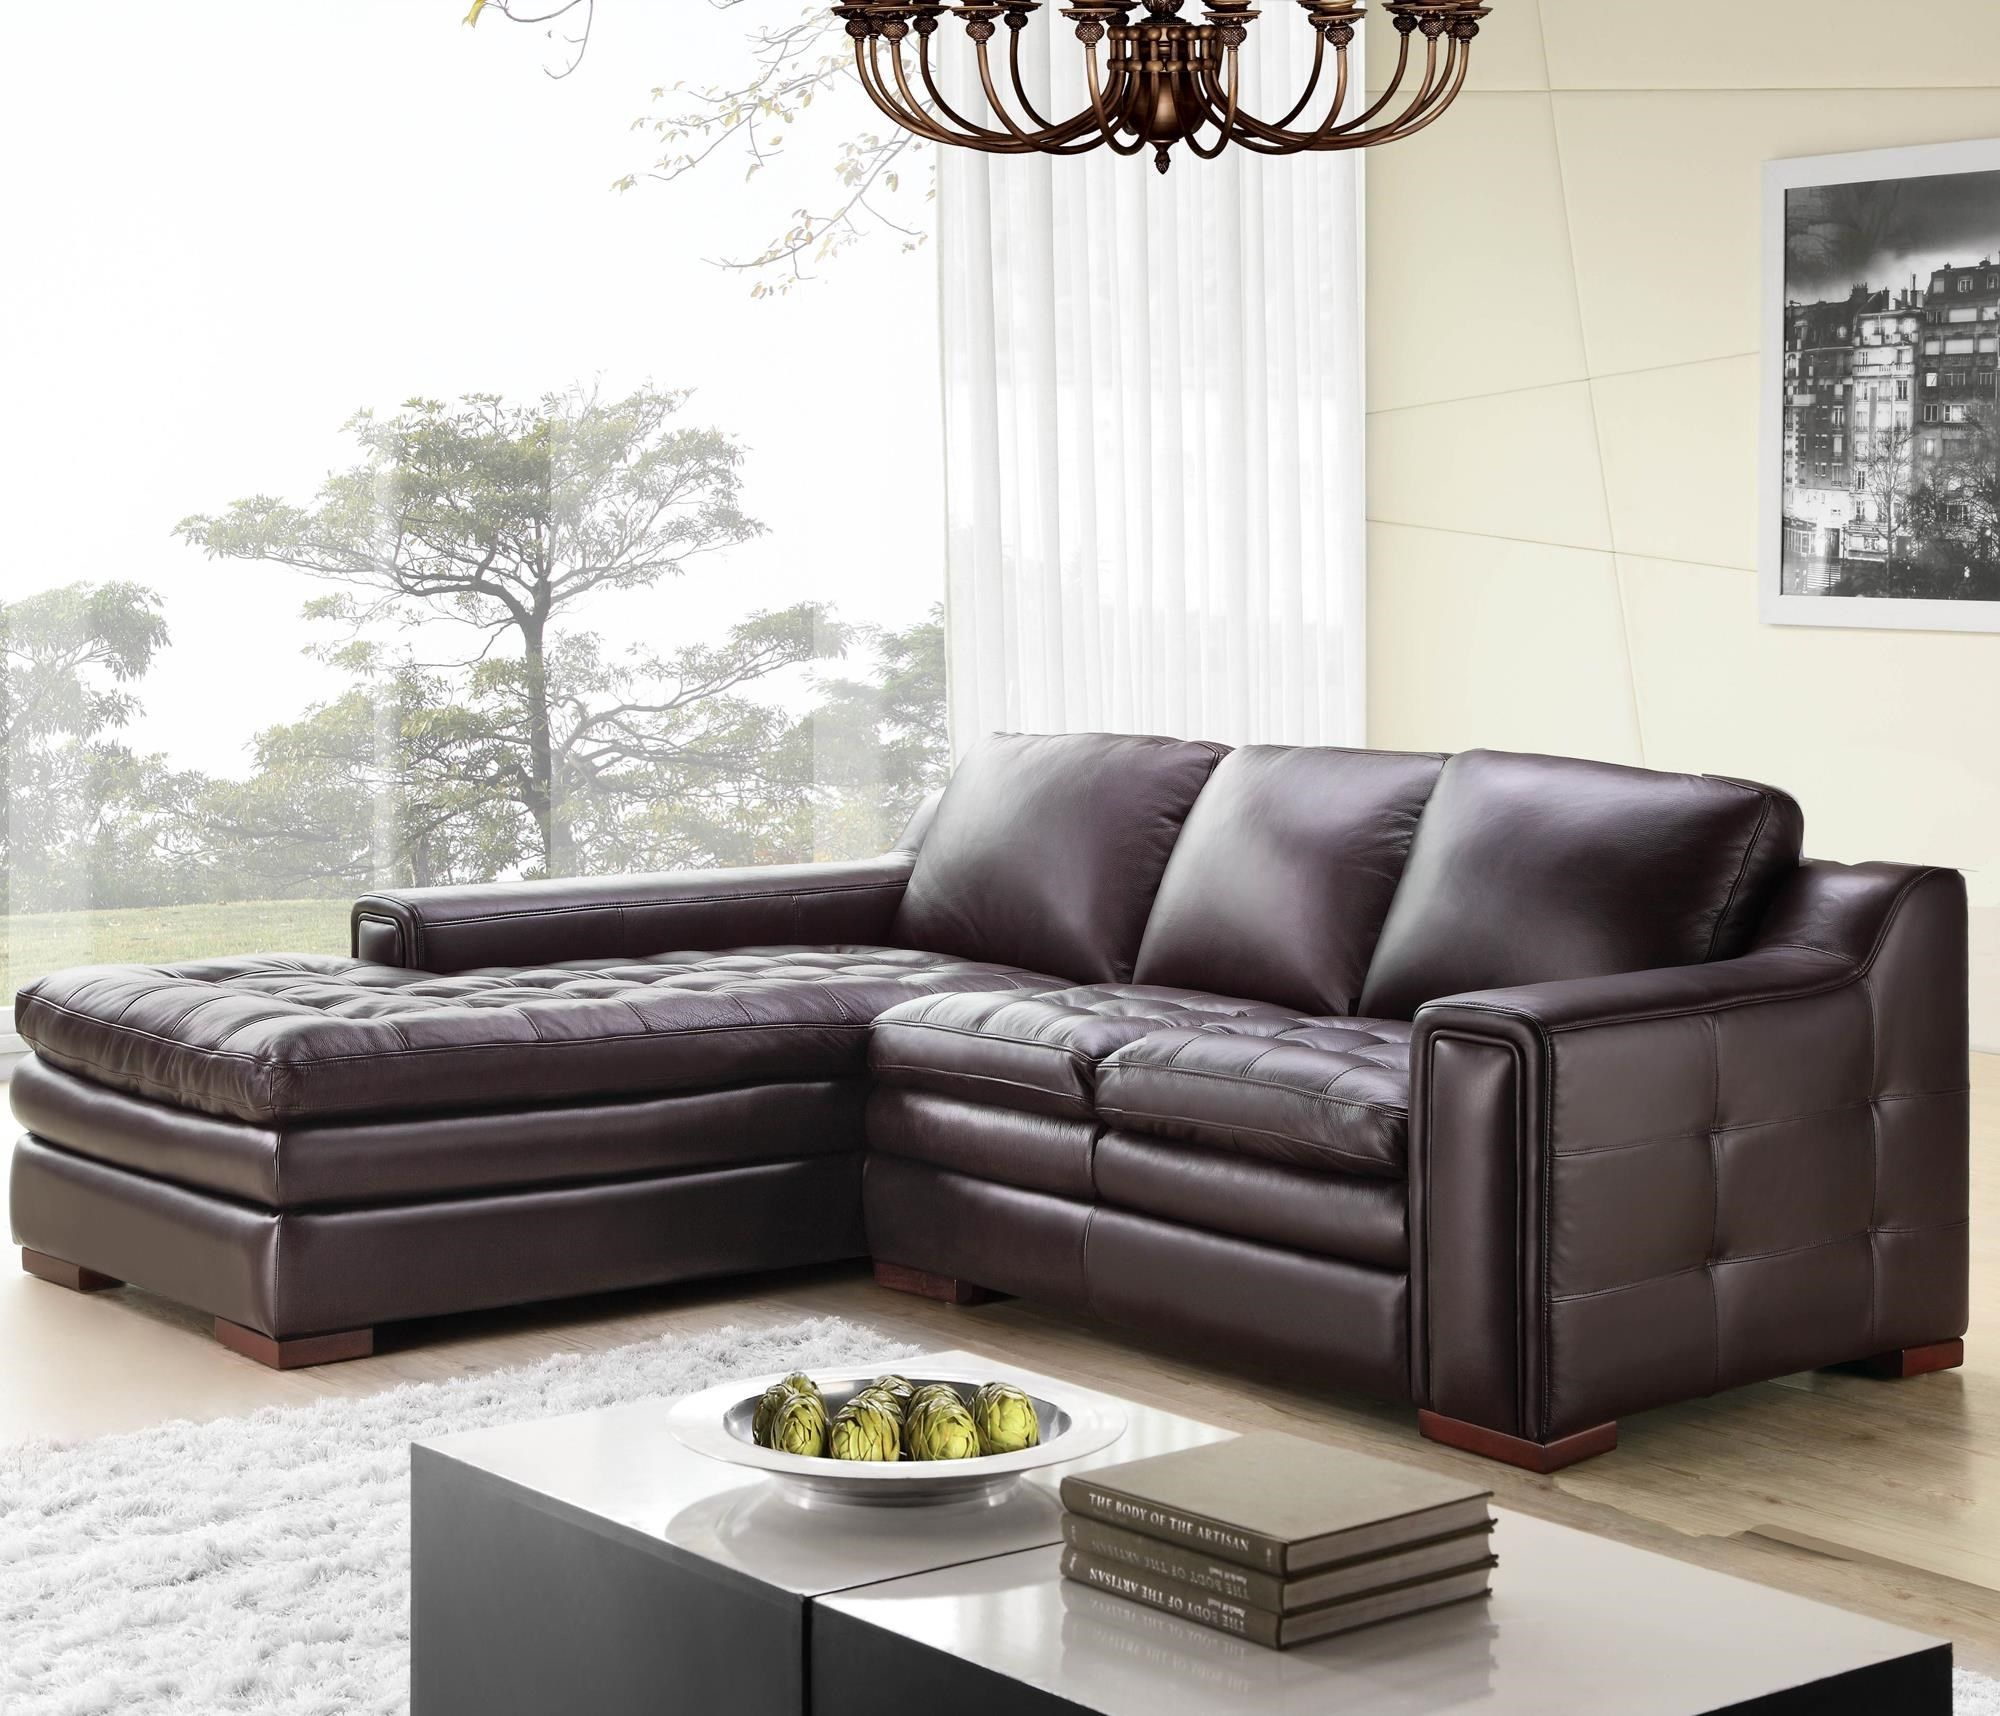 7491 2 Pce Brahma Sectional By Futura Leather At Stoney Creek Furniture